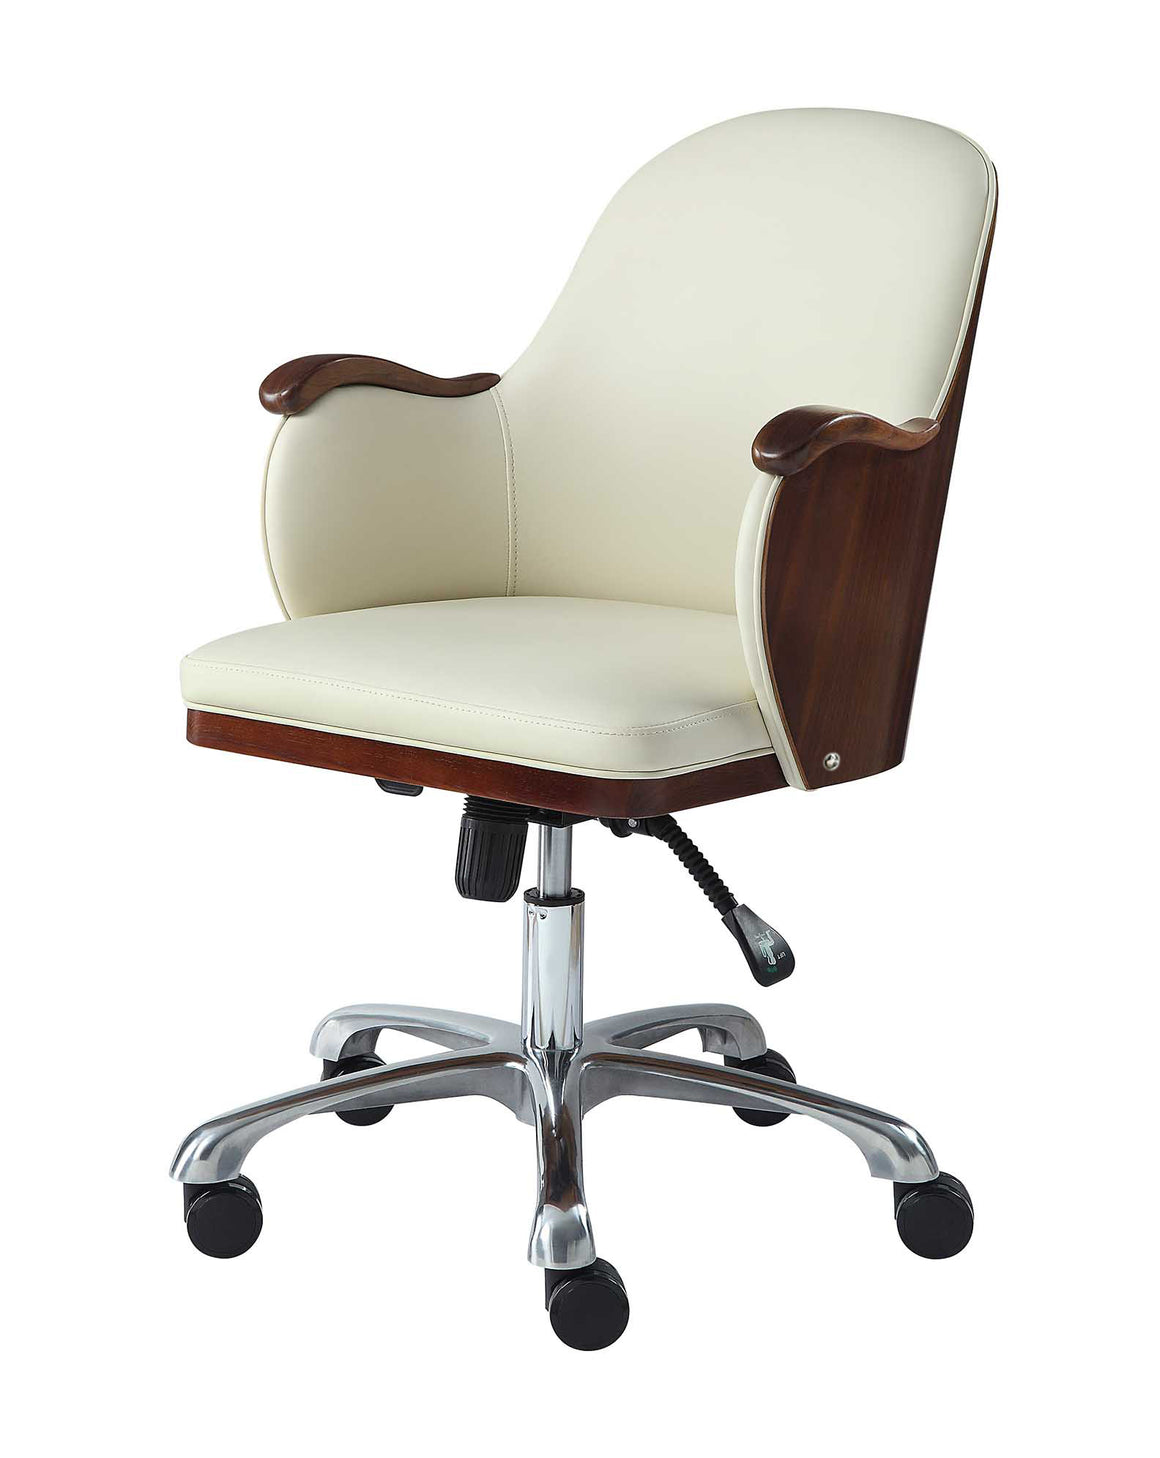 PC712 - San Francisco Executive Office Chair Walnut - PRE ORDER FOR DELIVERY W/C 03/08/2020